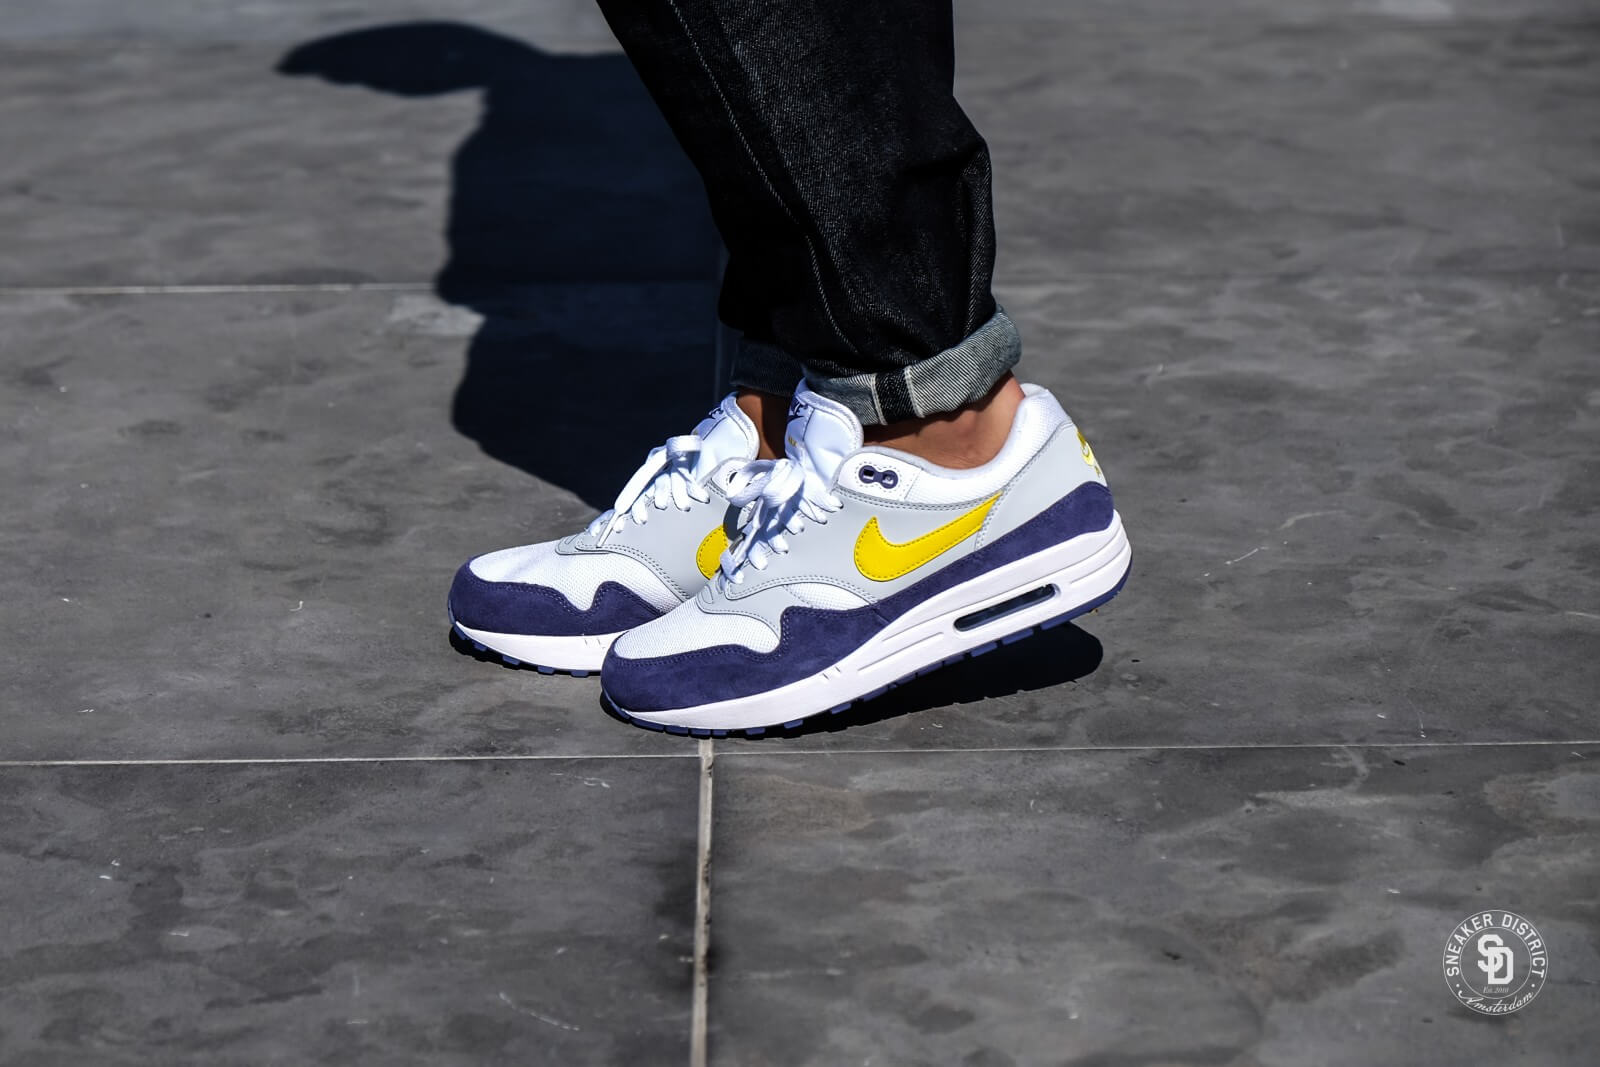 Nike Air Max 1 White/Tour Yellow-Blue Recall